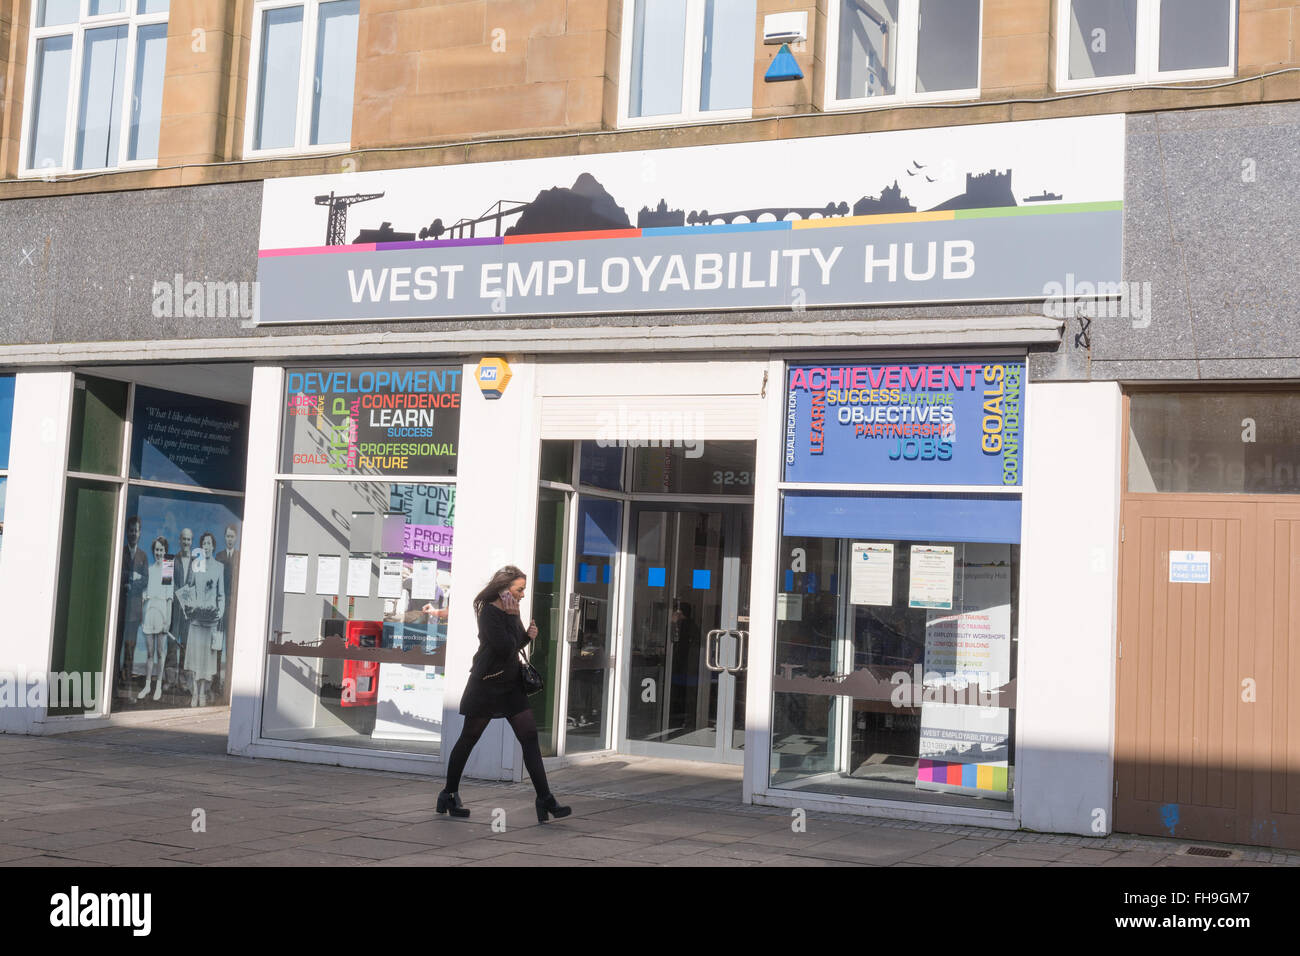 West Employability Hub - a job centre for young people - Dumbarton, West Dunbartonshire, Scotland, UK - Stock Image